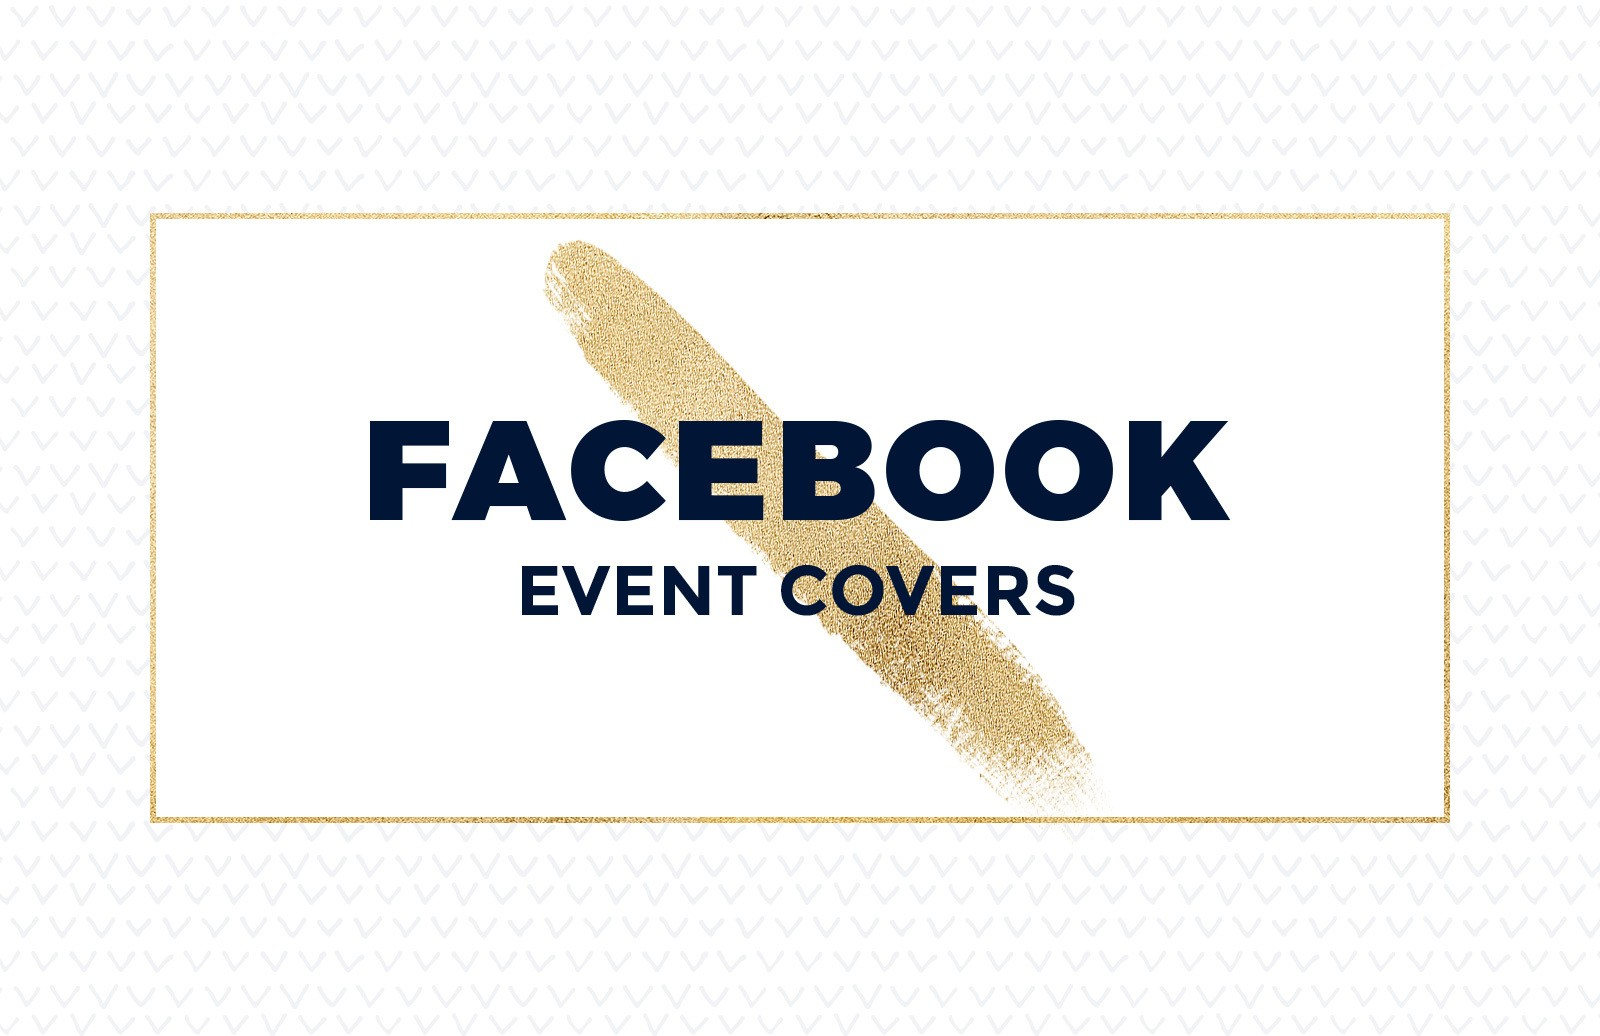 Facebook Event Cover Templates